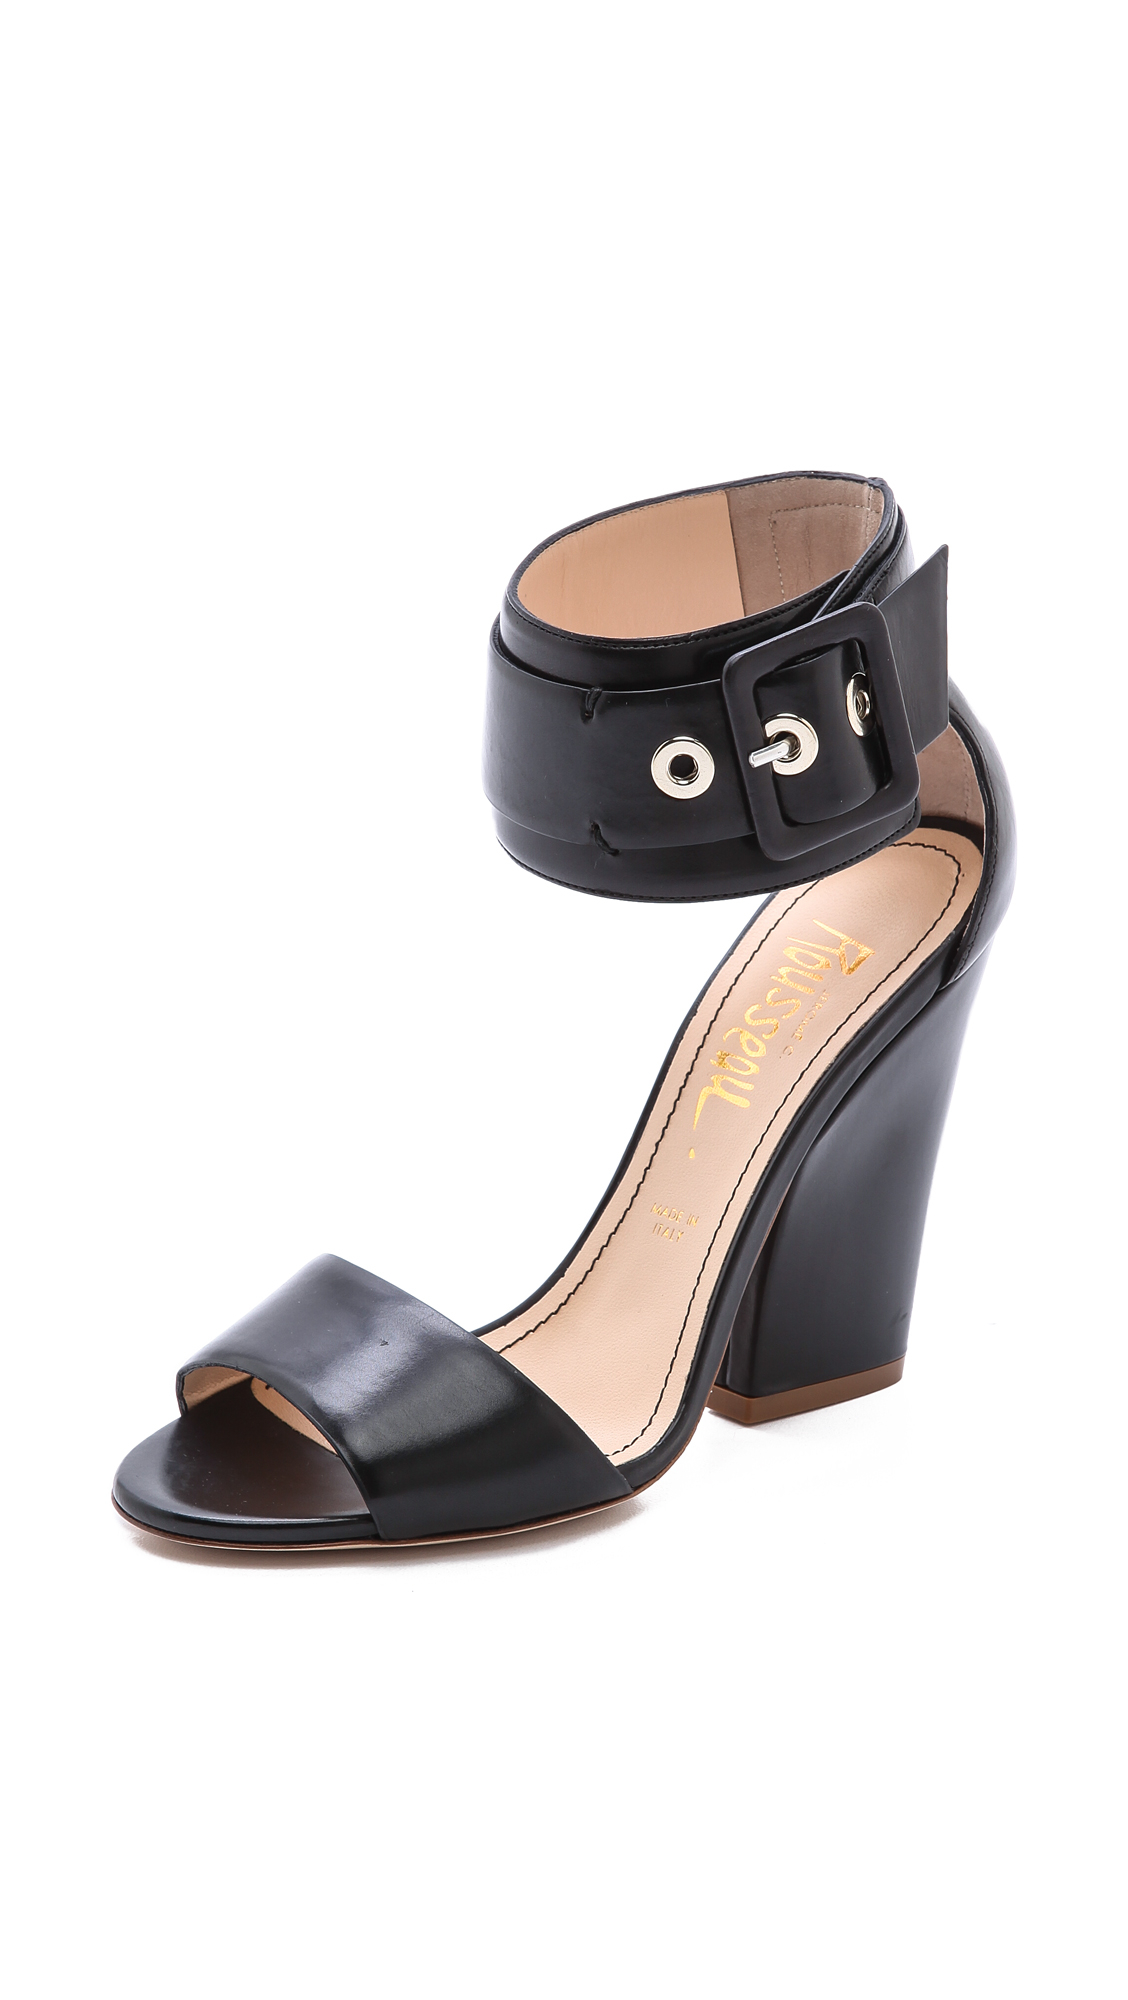 cheap new arrival Jerome C. Rousseau Leather Wedge Sandals clearance store for sale cheap new styles PQDljmGQl